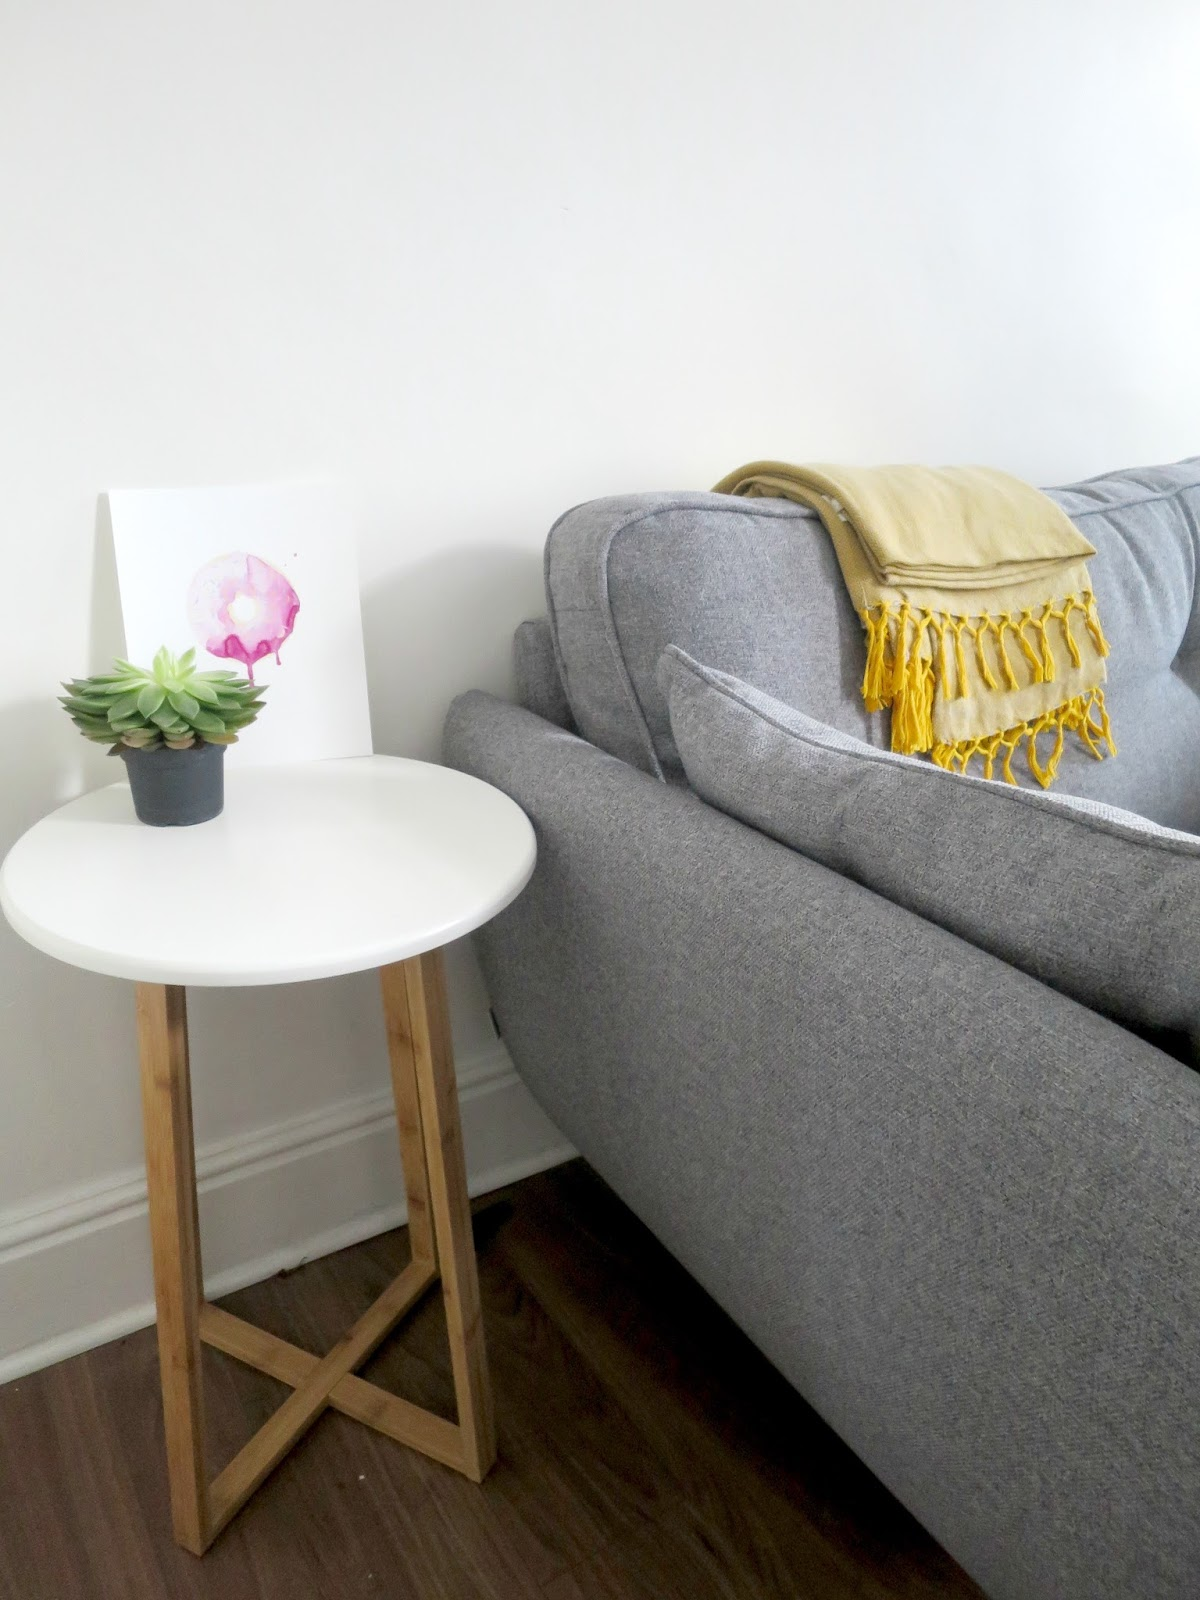 sweet allure Buying Our First Home: 1 Year On homeware interiors lifestyle blog owners first time buyers